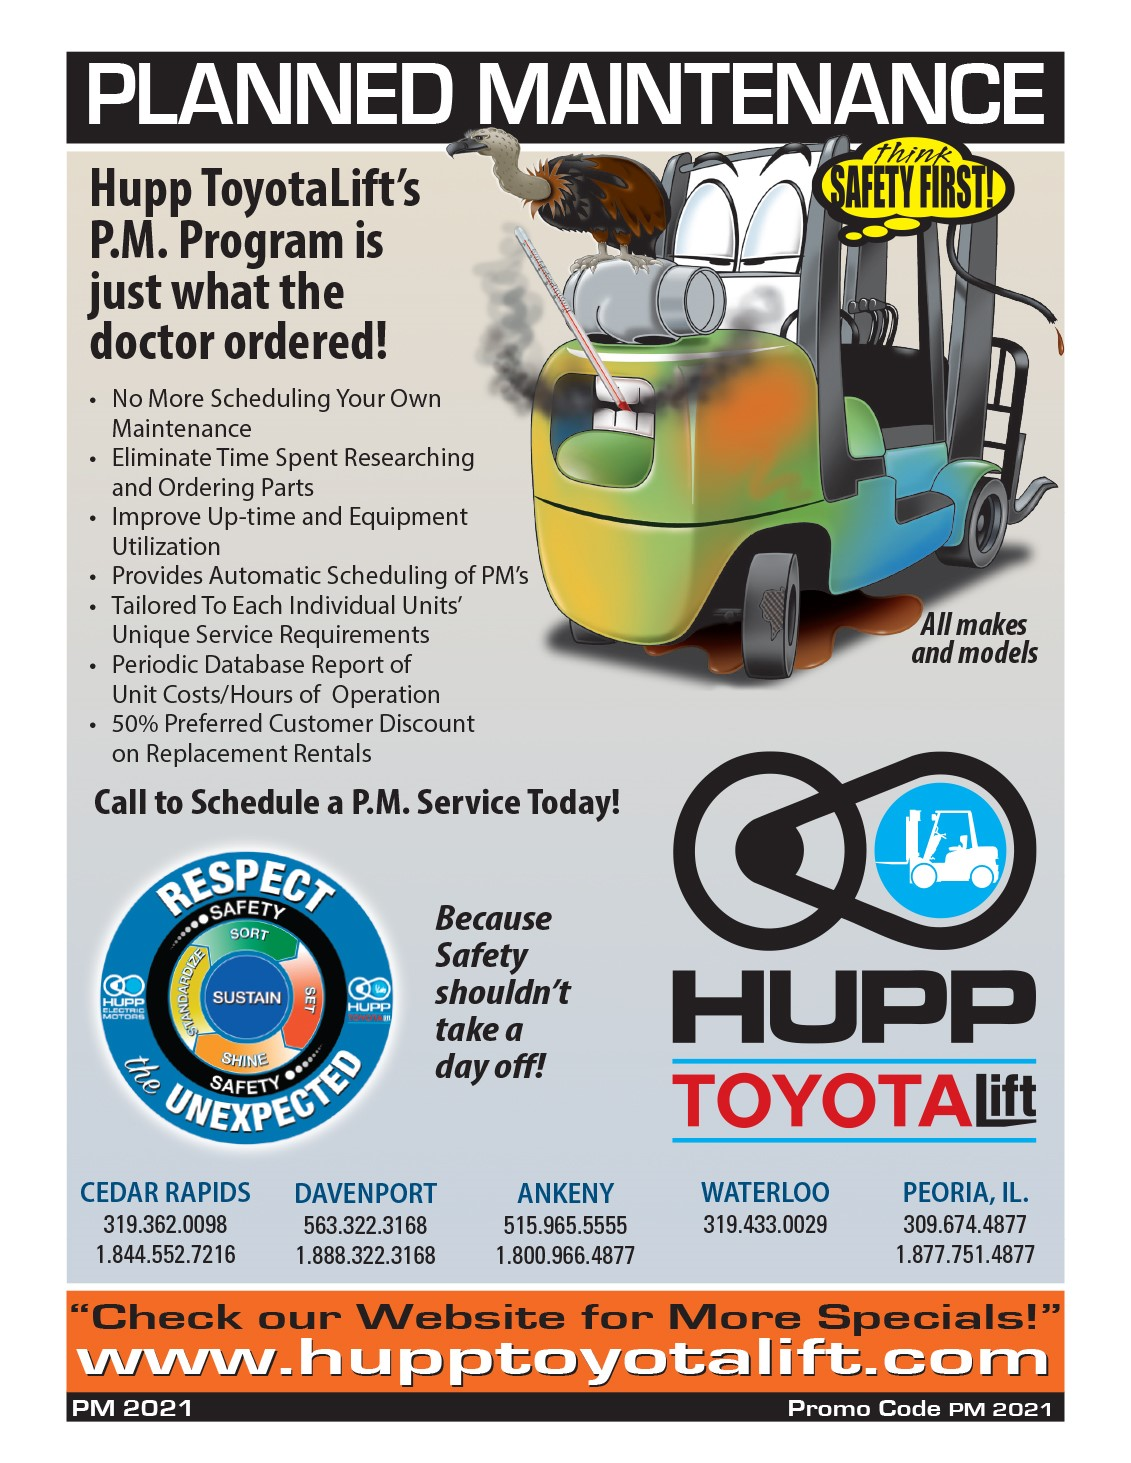 Hupp-Toyota-Scheduled-Maintenance